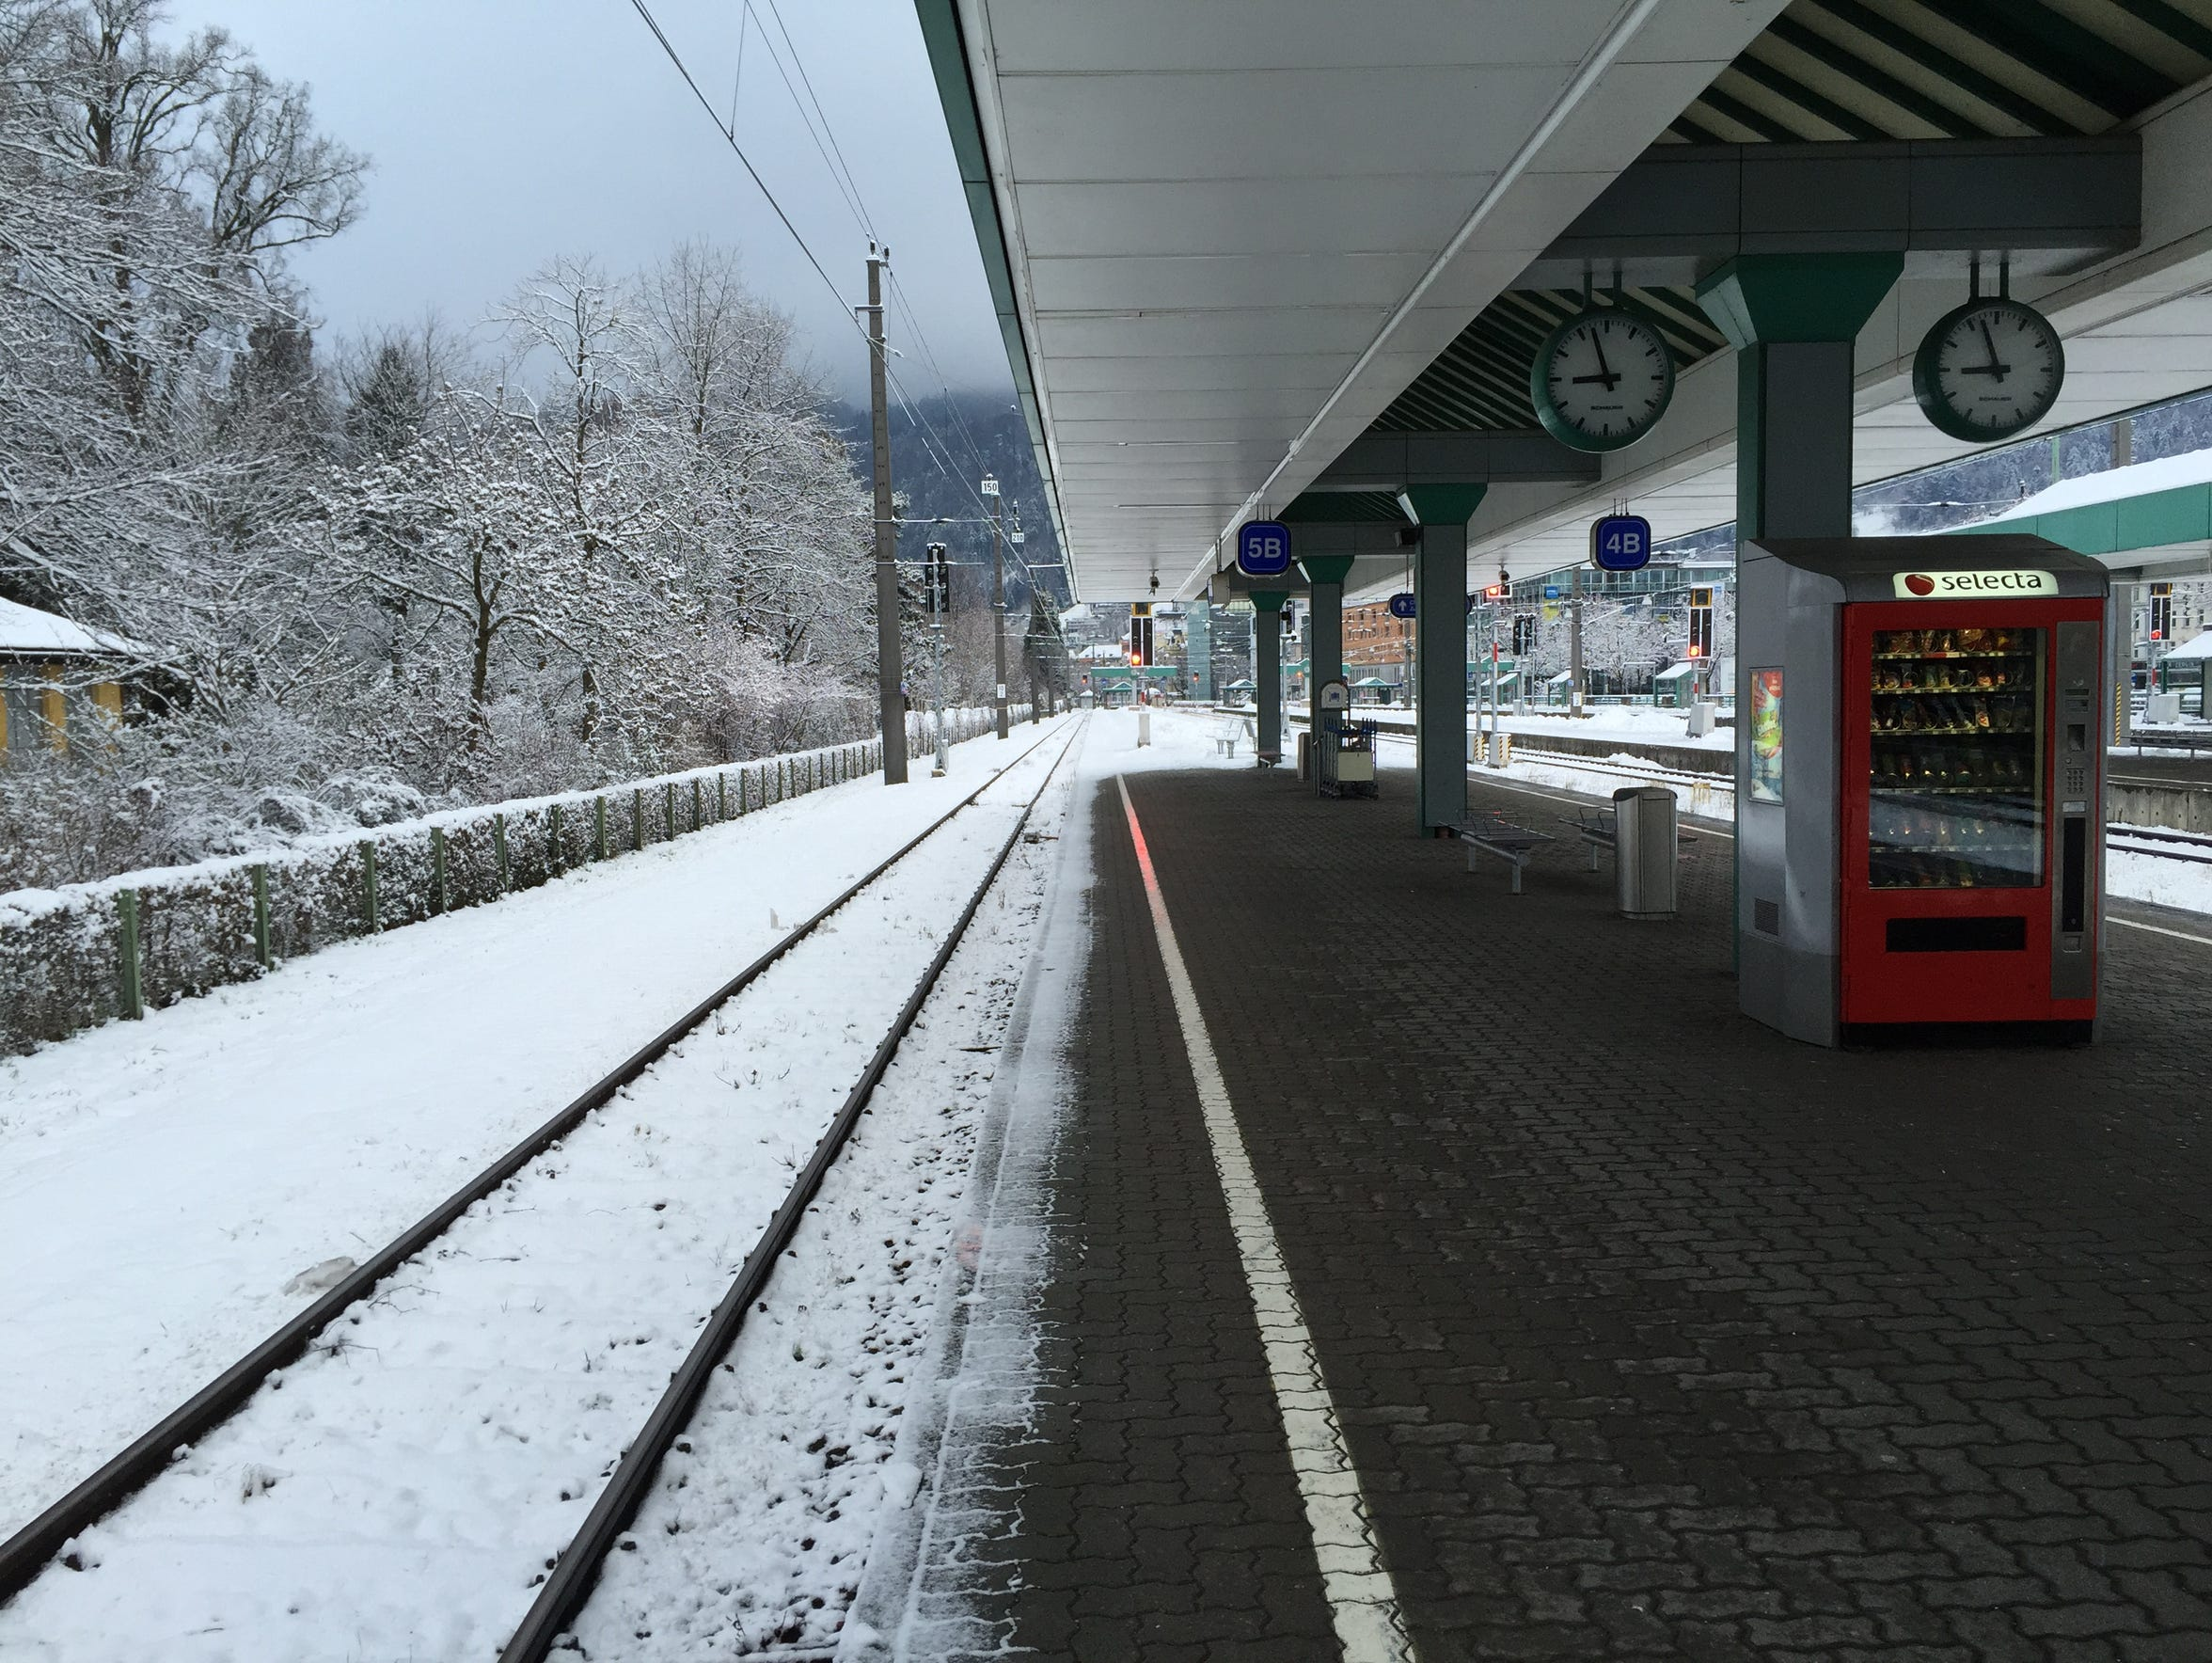 The train station at Dornbirn, Austria.